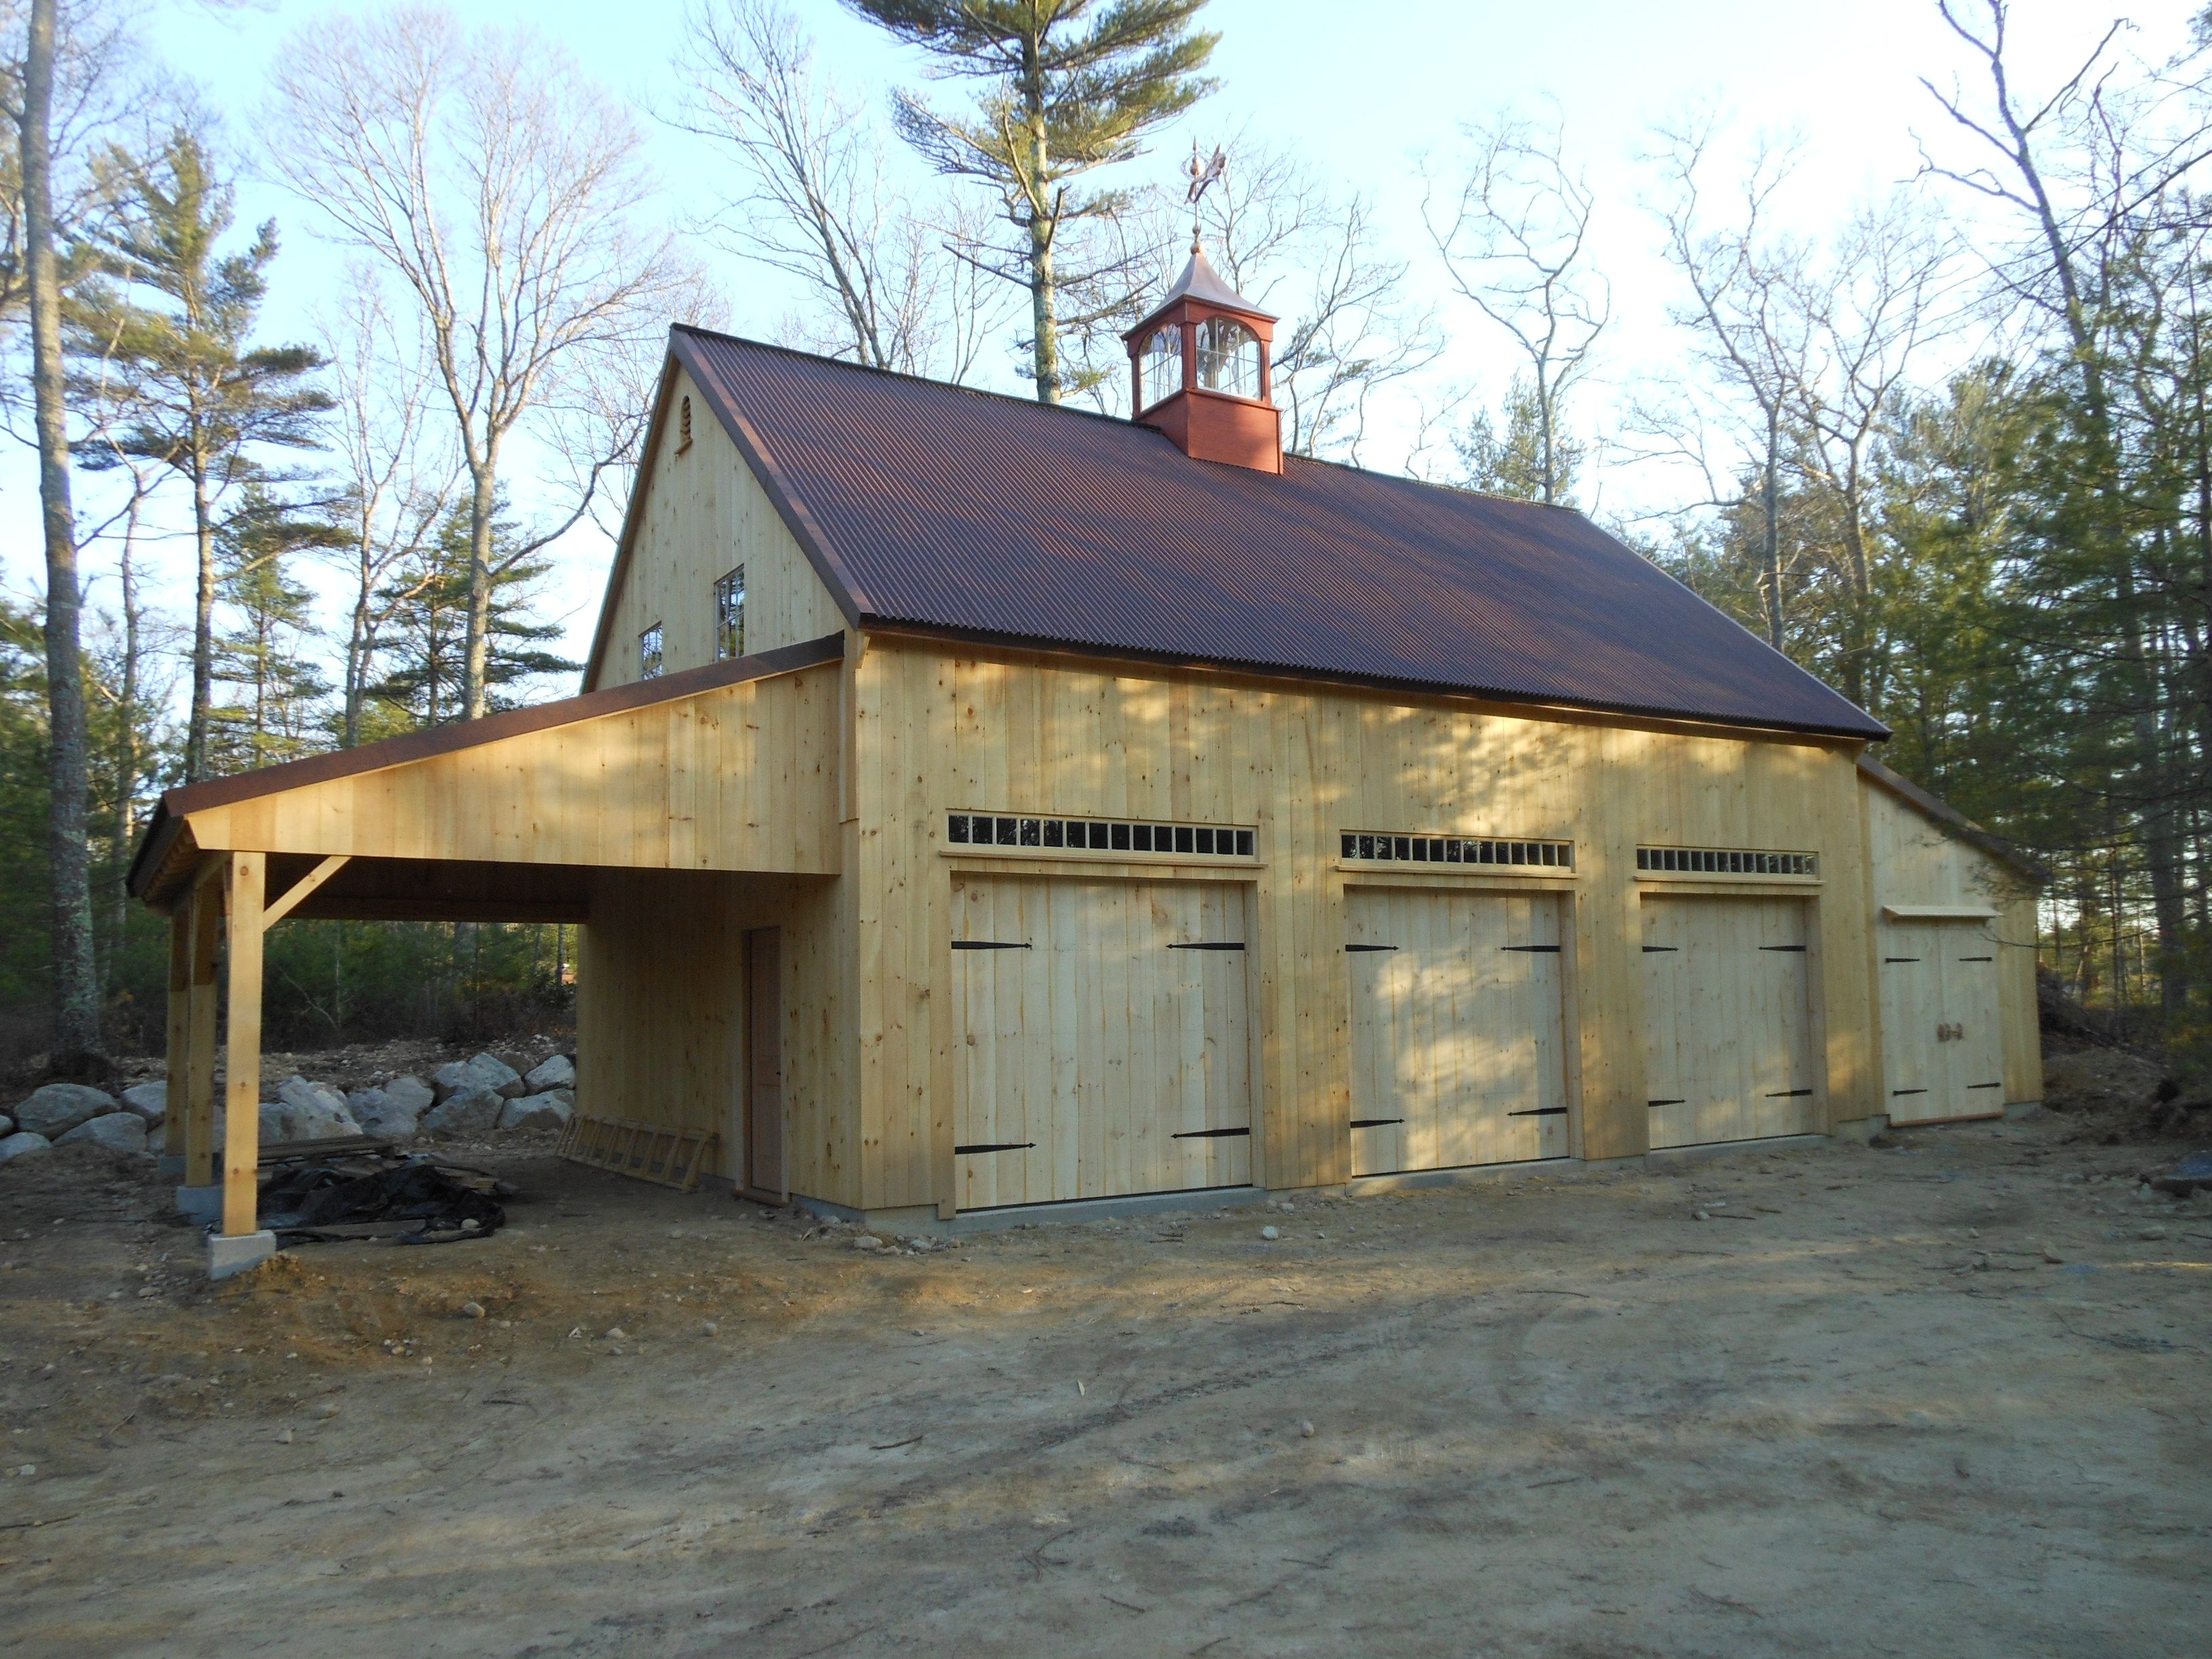 Our 1 1 2 Story Post Beam Bar 22 X 36 With Open And Enclosed Gable End Lean To S Www Countrycarpenters C Garage Workshop Plans Shed House Plans Shed Homes